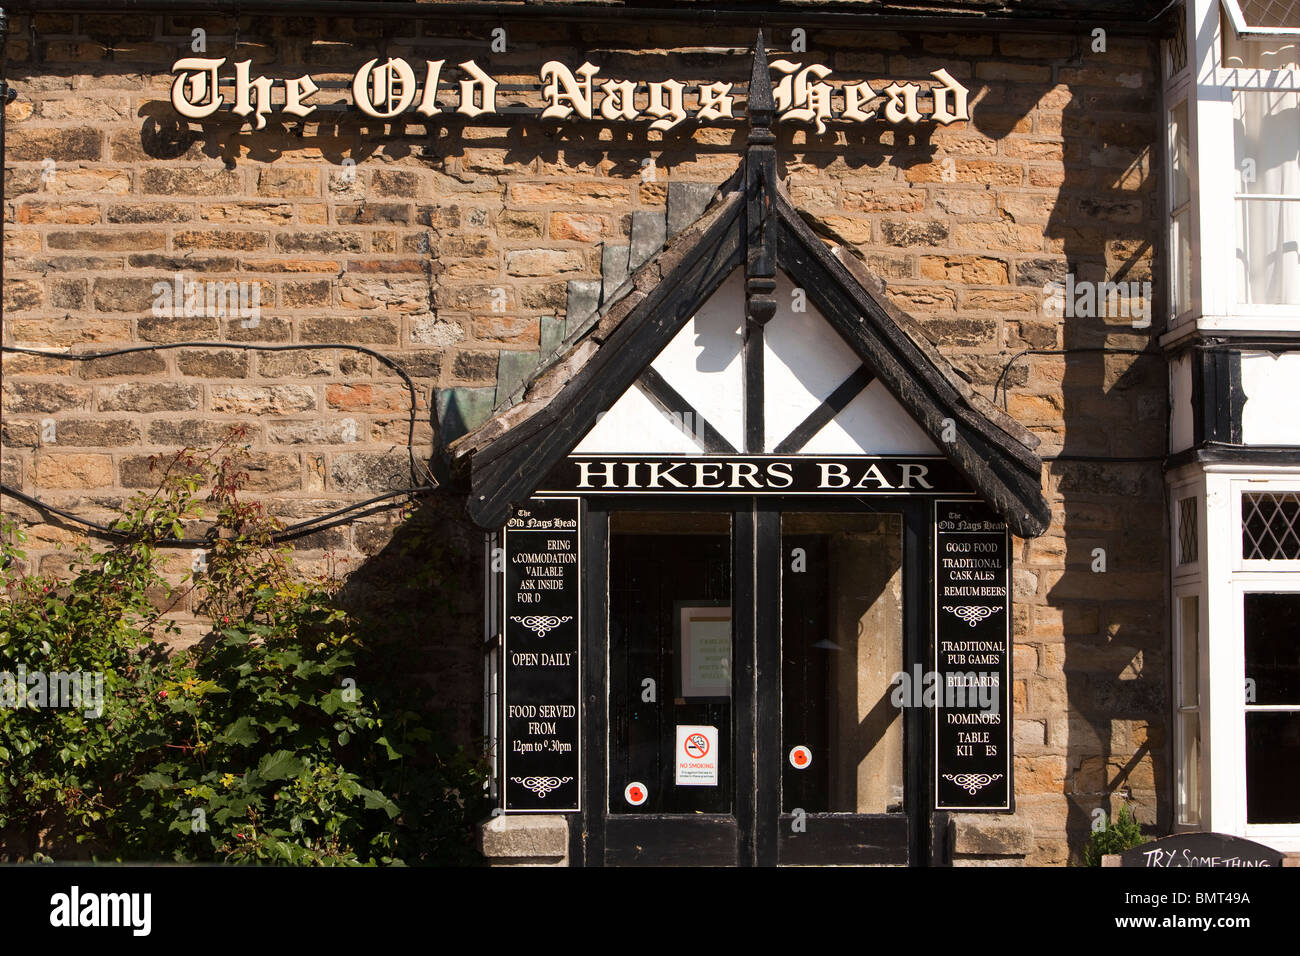 UK, Derbyshire, Edale, The Old Nag's Head pub, official starting point of the Pennine Way long distance path hikers bar entrance Stock Photo